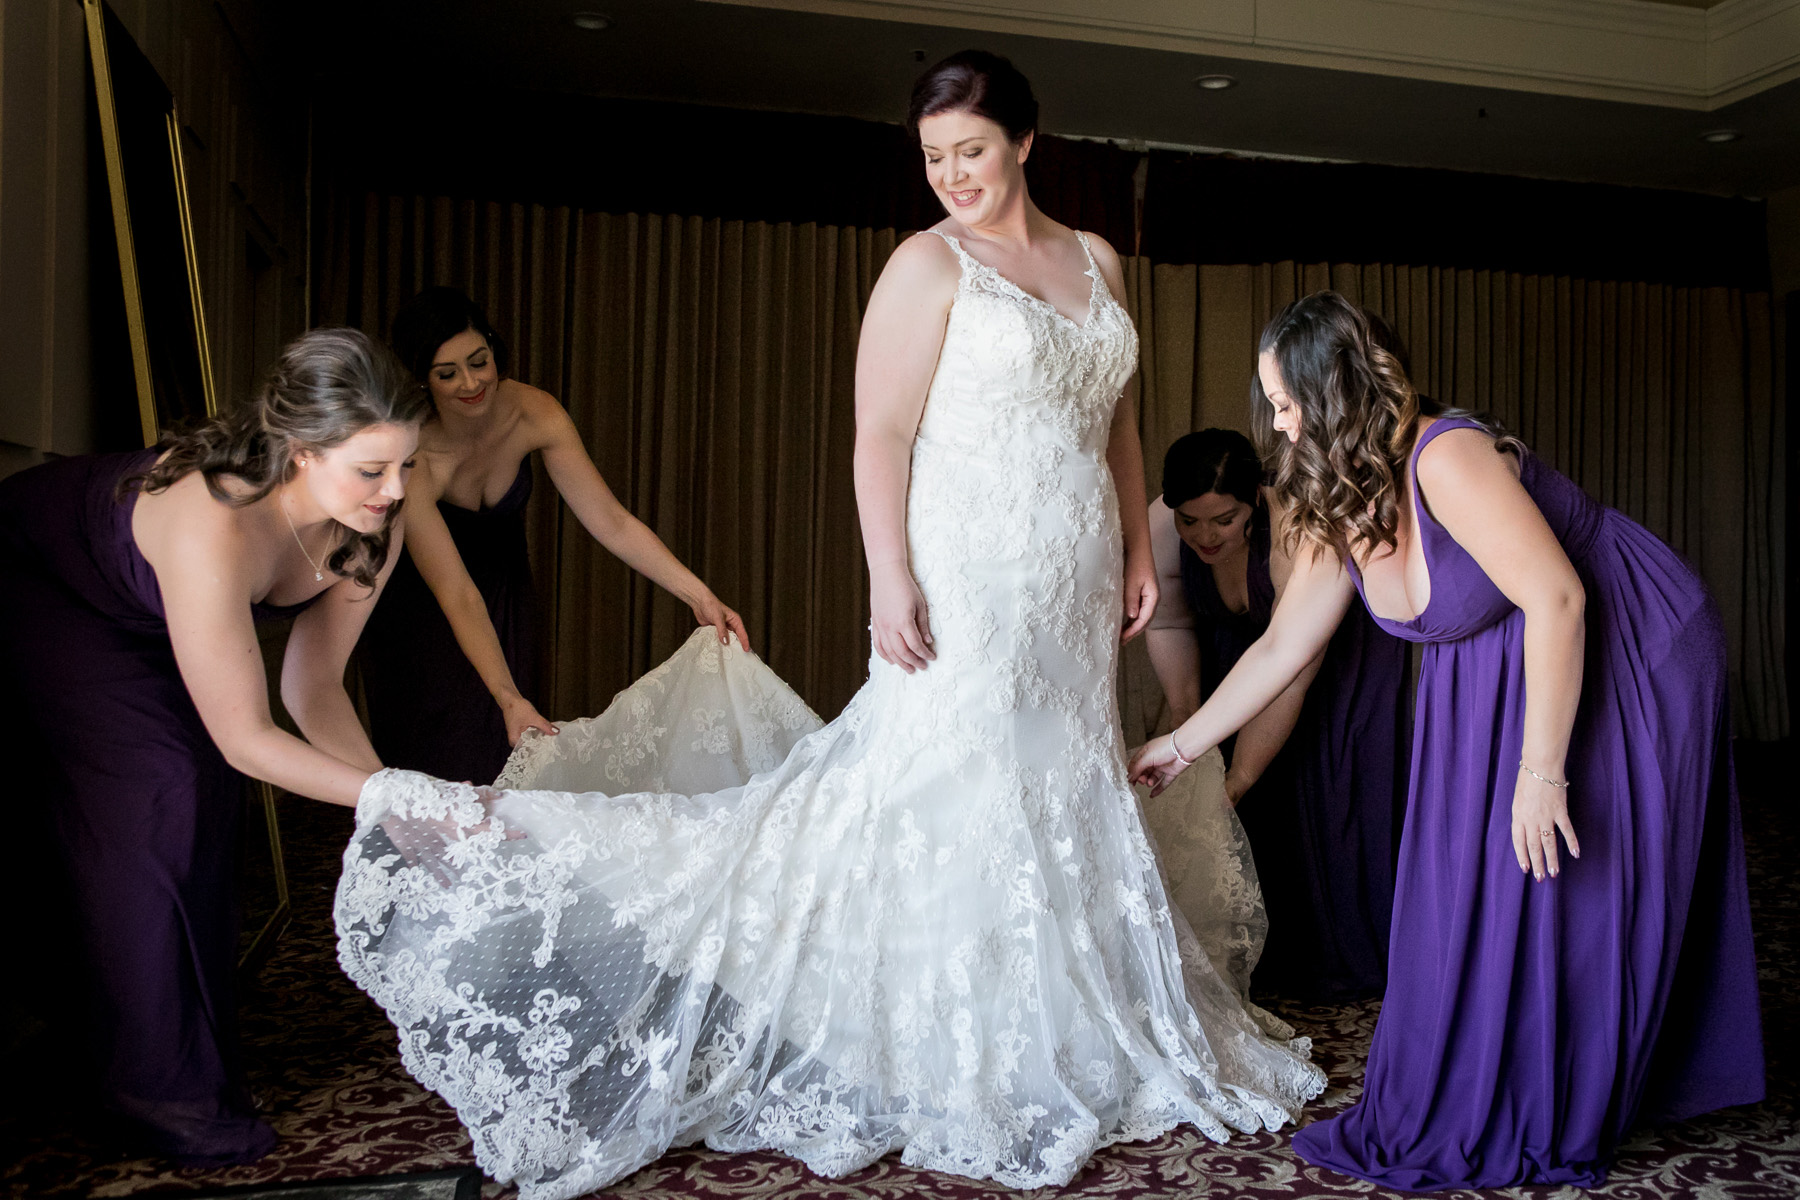 bridesmaids fluff wedding dress at wedding at rancho santa margarita wedding photos